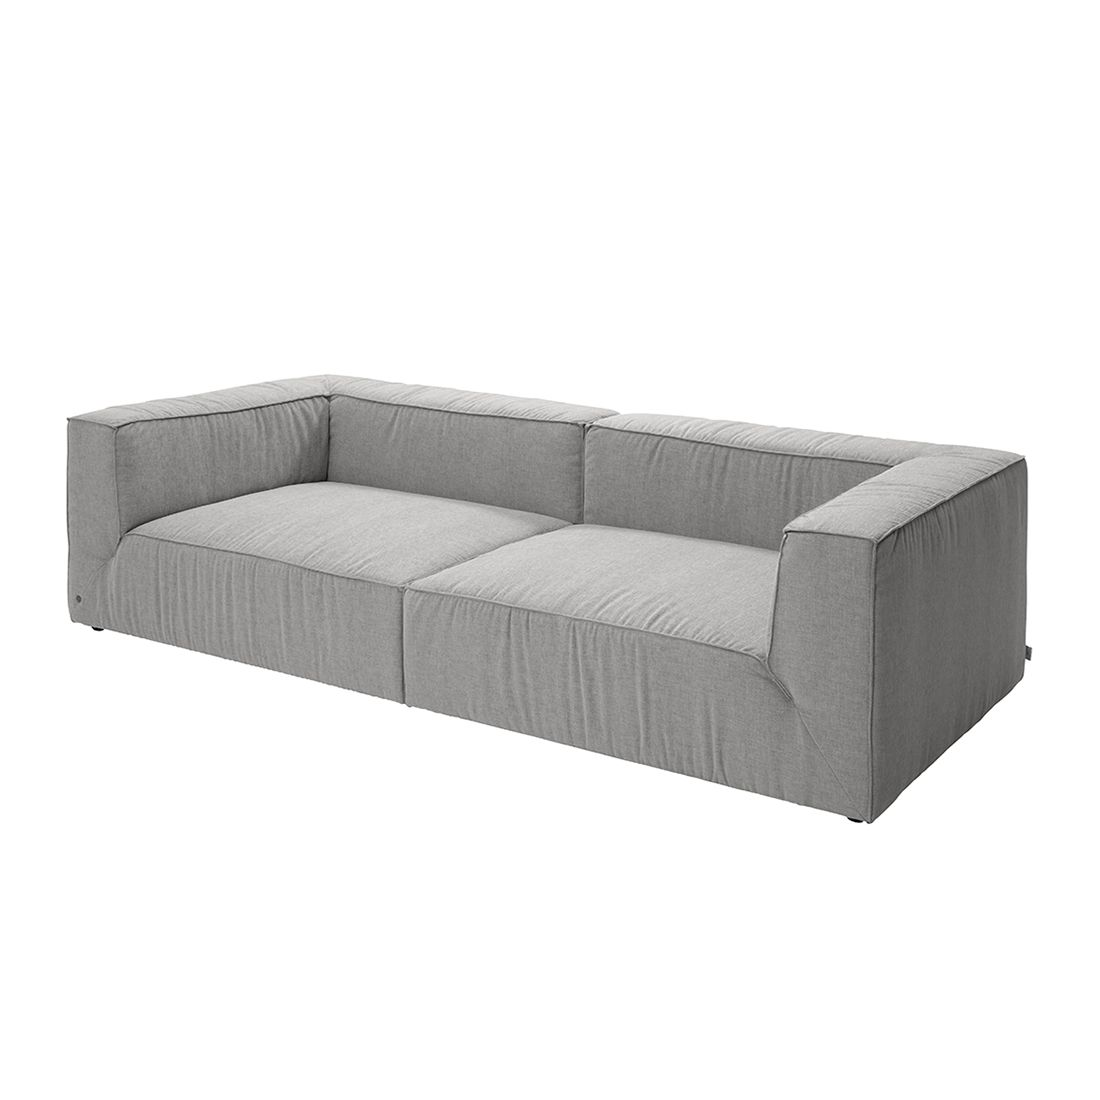 Full Size of Tom Tailor Couch Heaven Style Sofa Casual Nordic Chic Big Cube Elements Pure Colors West Coast Xl Jetzt Bei Home24 Xxl Von Grau Garten Ecksofa Chesterfield Sofa Tom Tailor Sofa